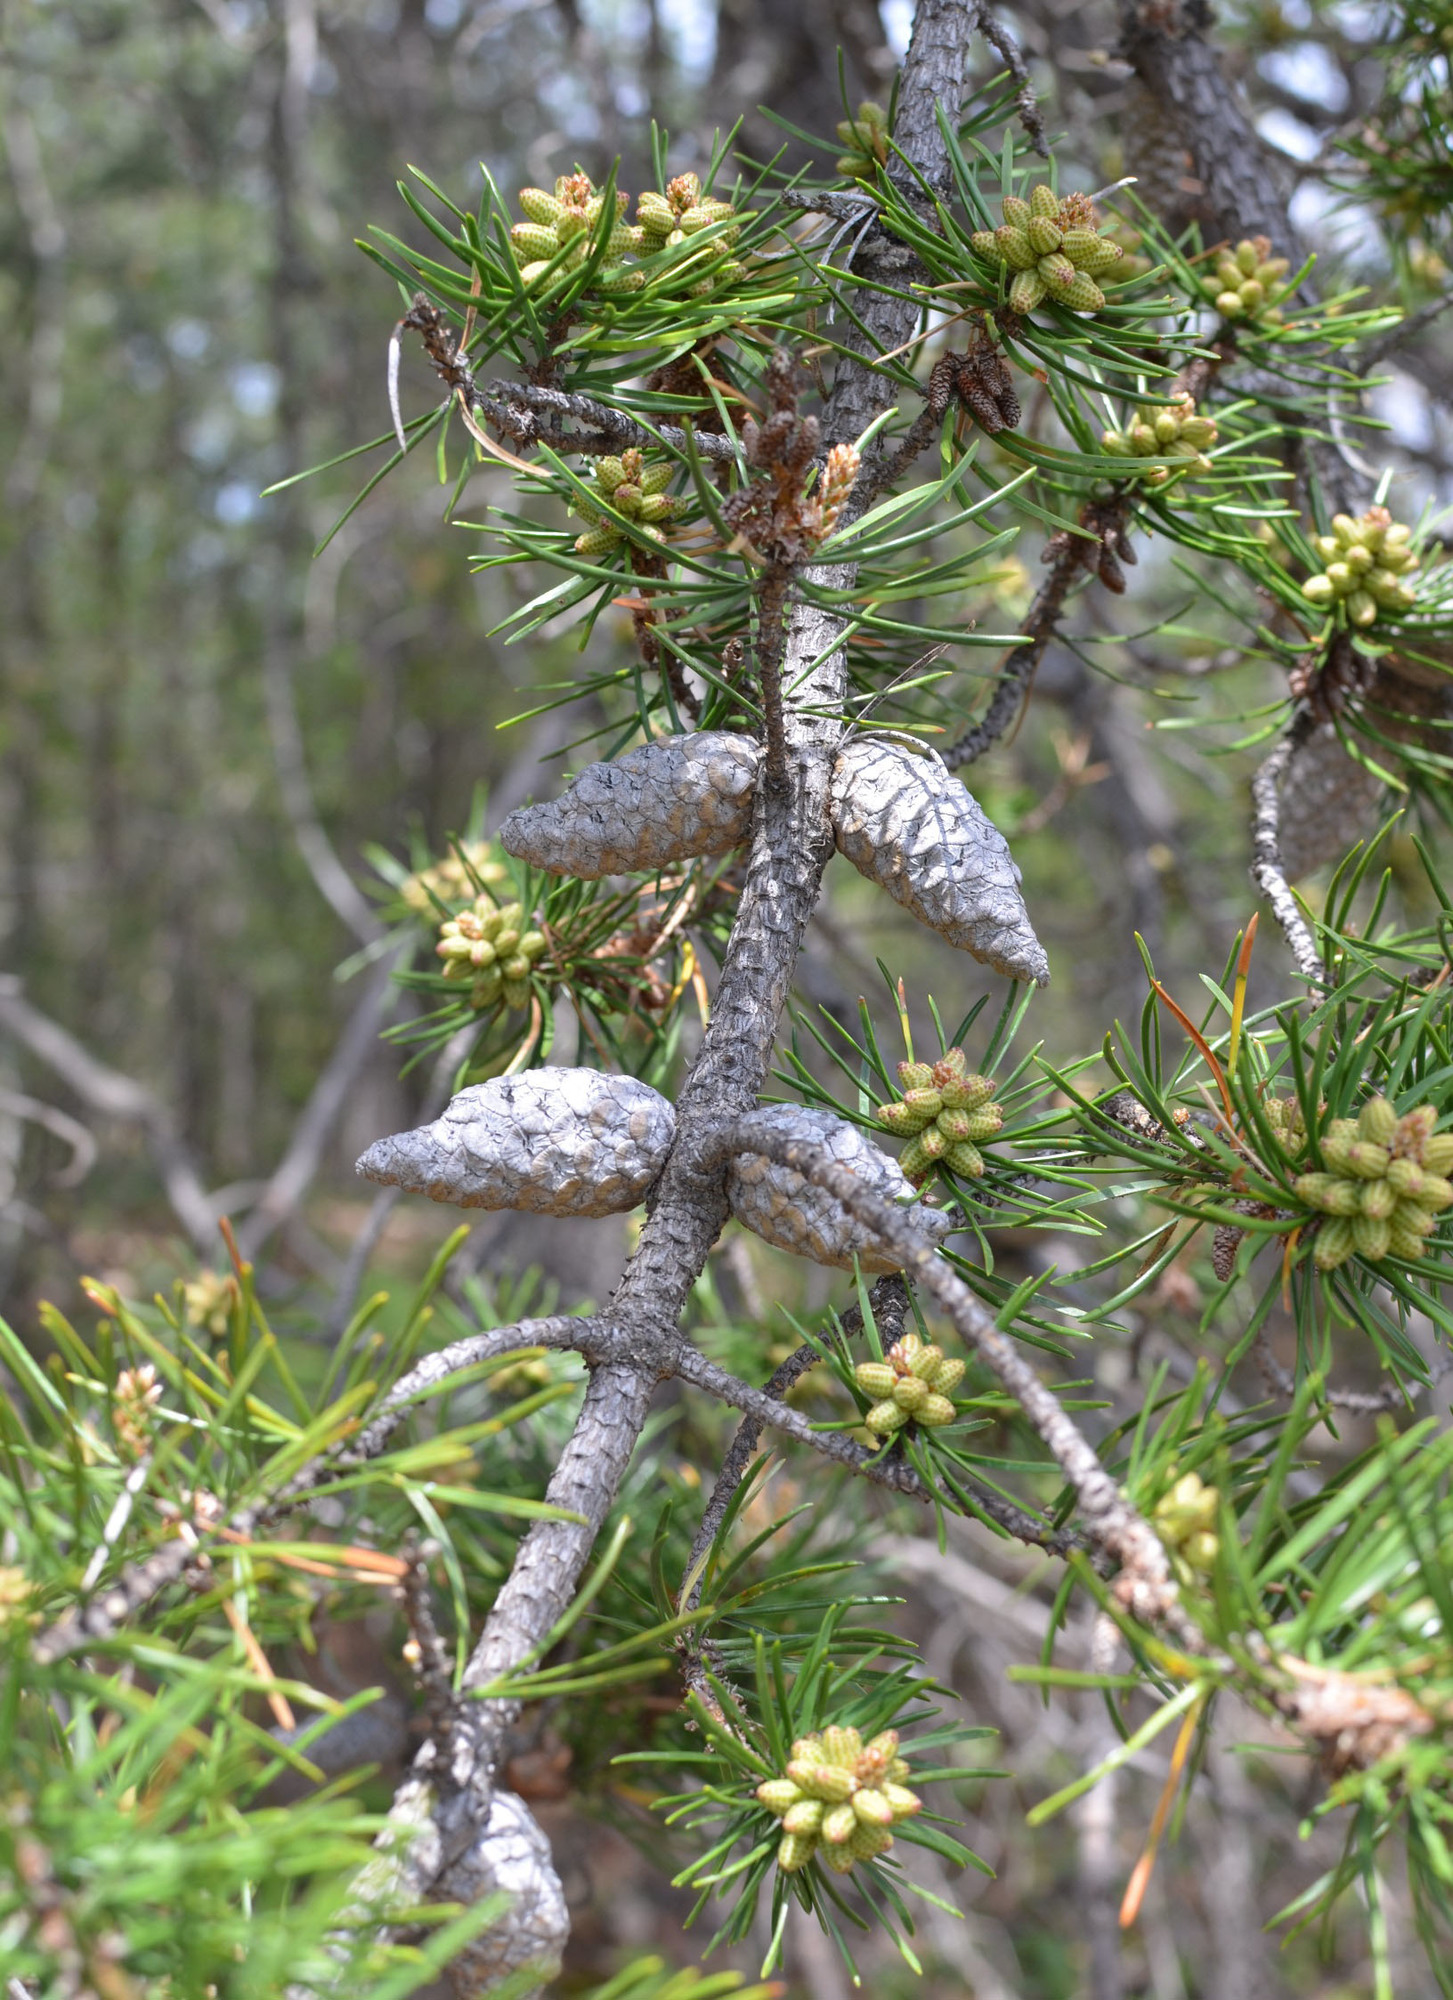 Jack pine cones are sealed with resin, shown here. They are opened by environmental triggers.